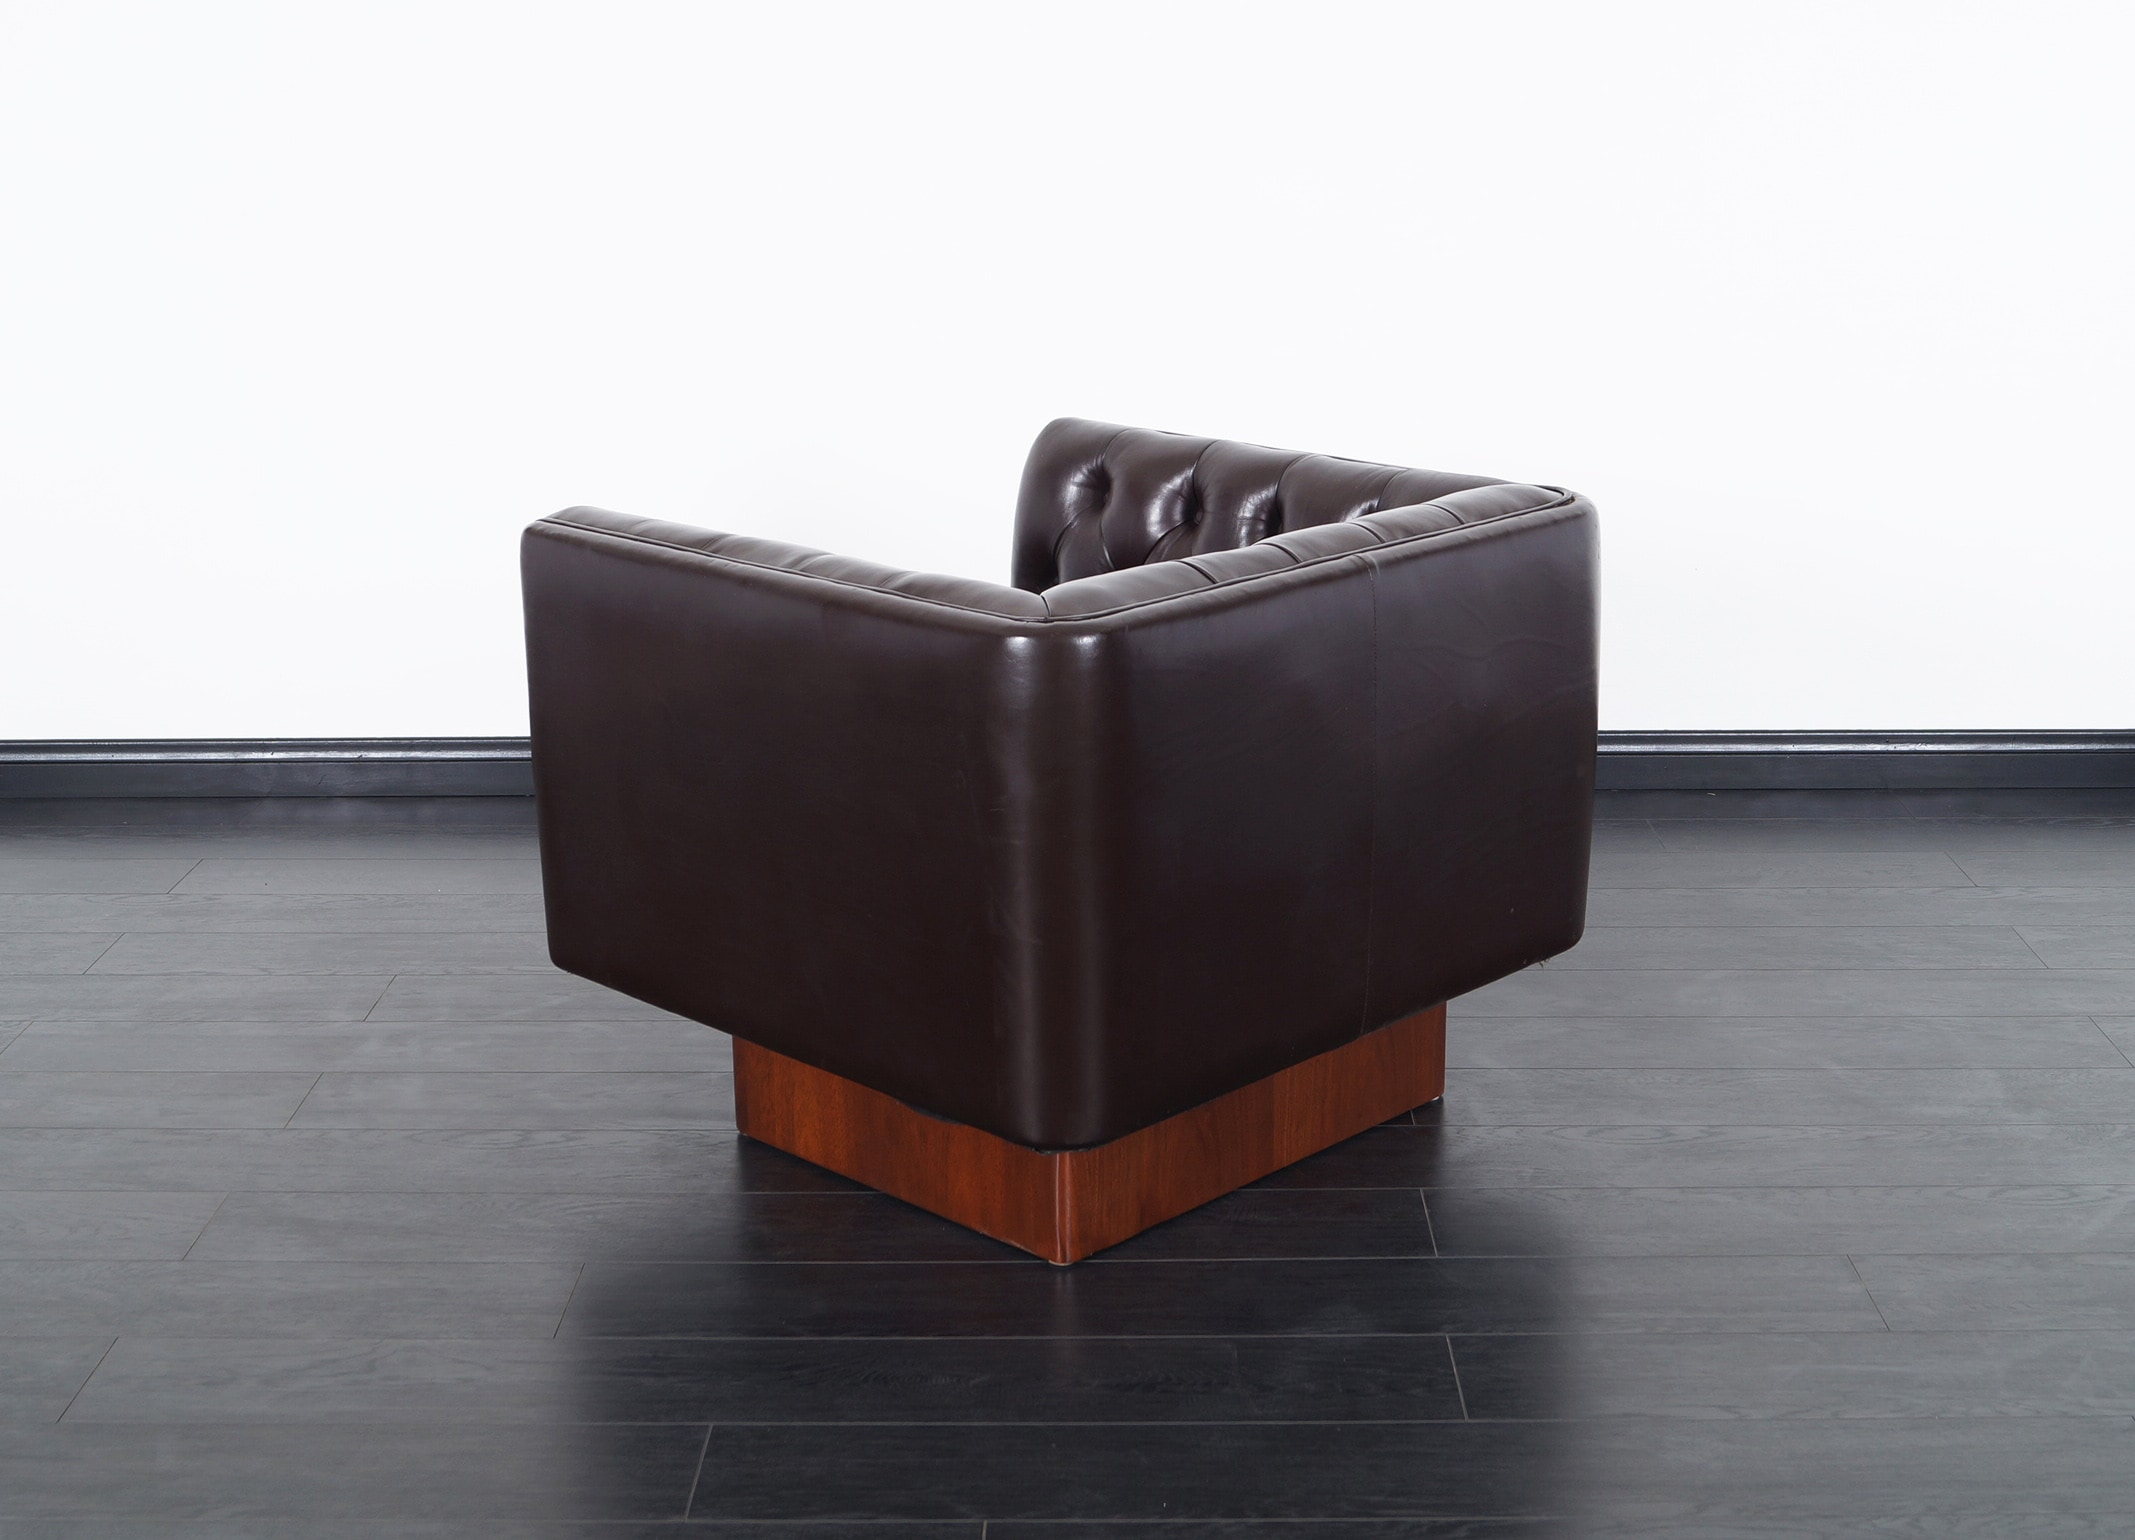 Vintage Tufted Leather Lounge Chairs by Milo Baughman